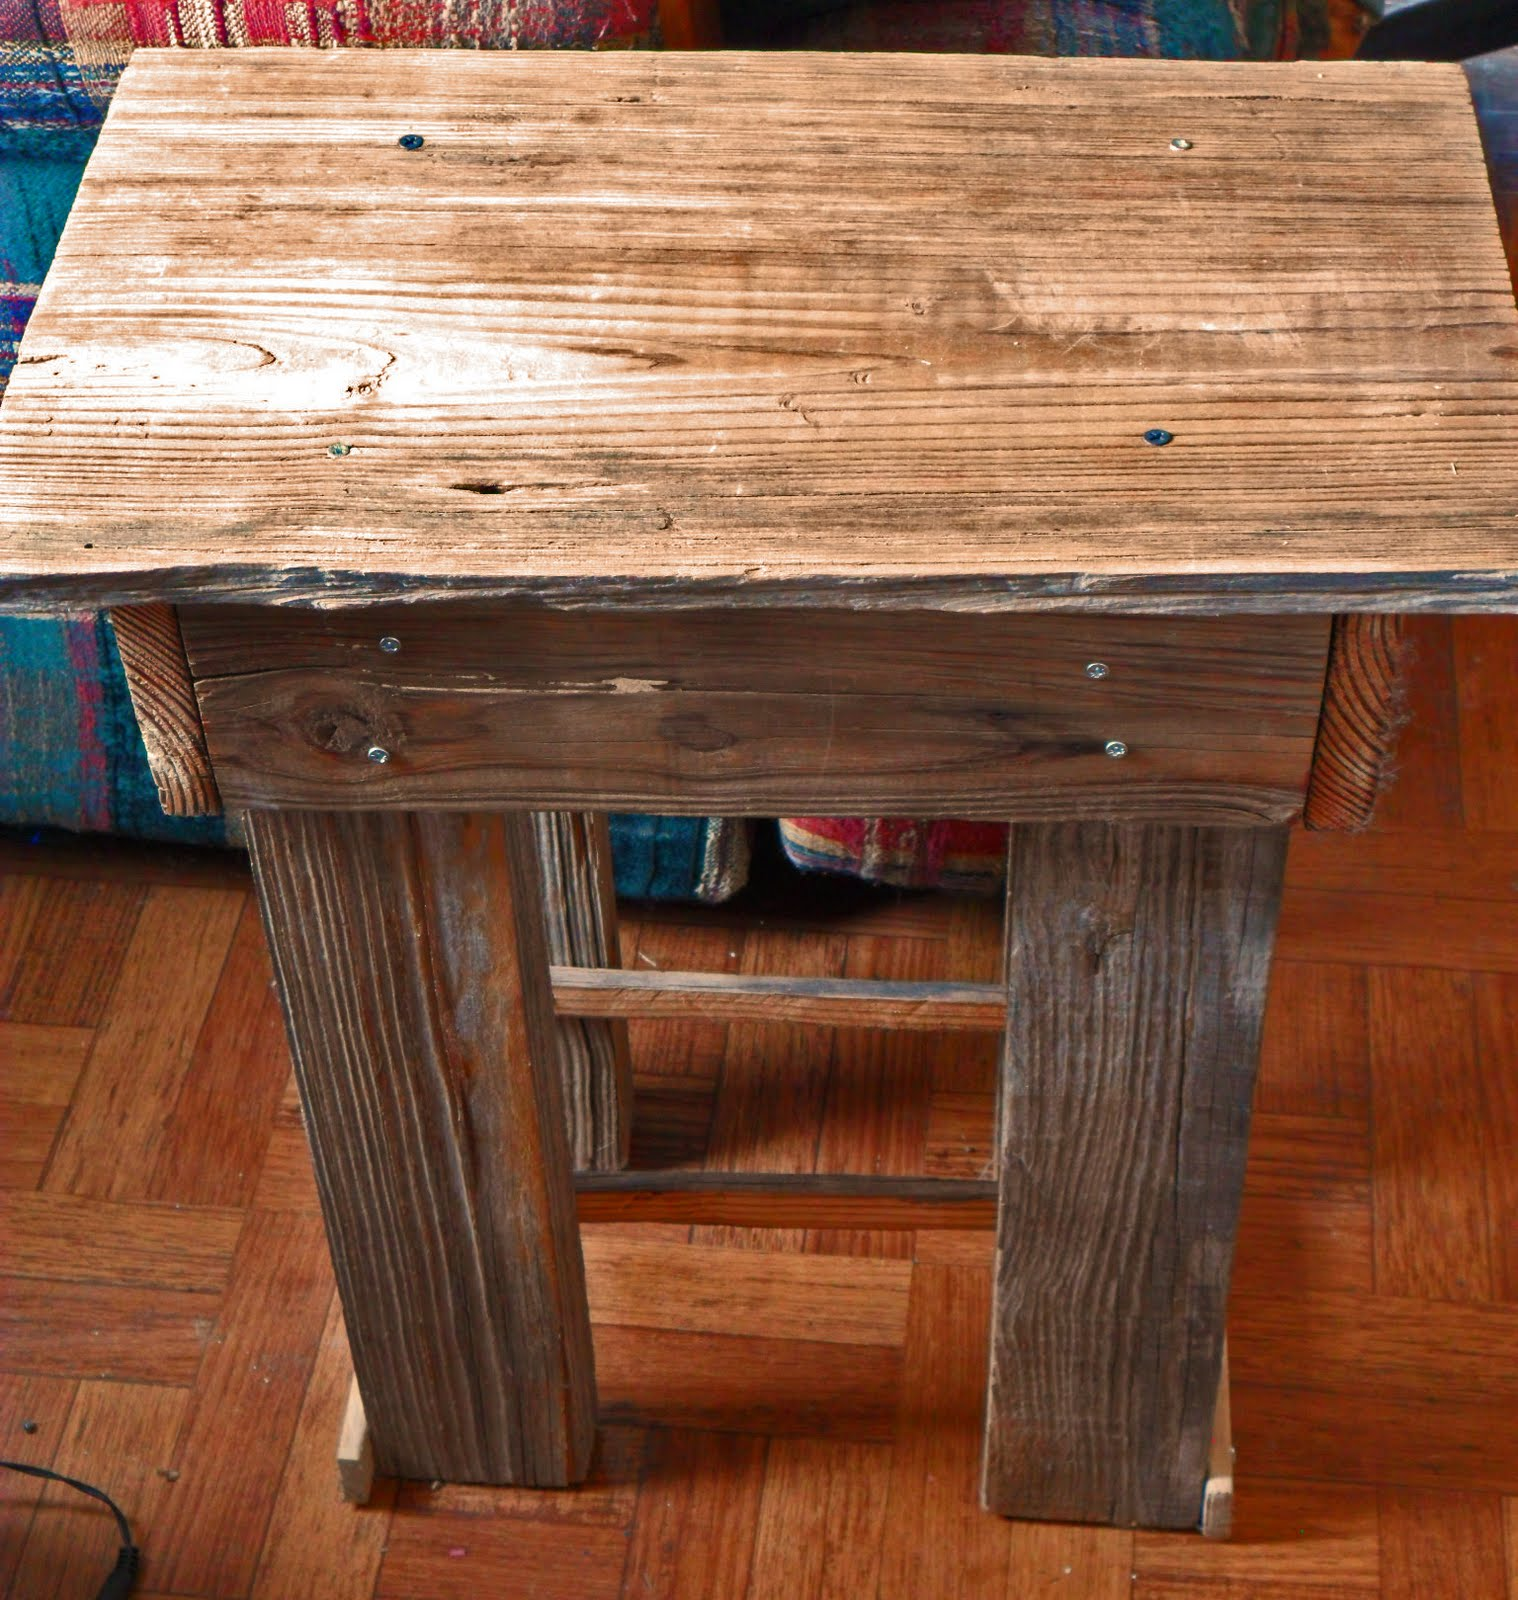 Farm Girl Crafts & Collectibles: More Barn Wood Crafts!